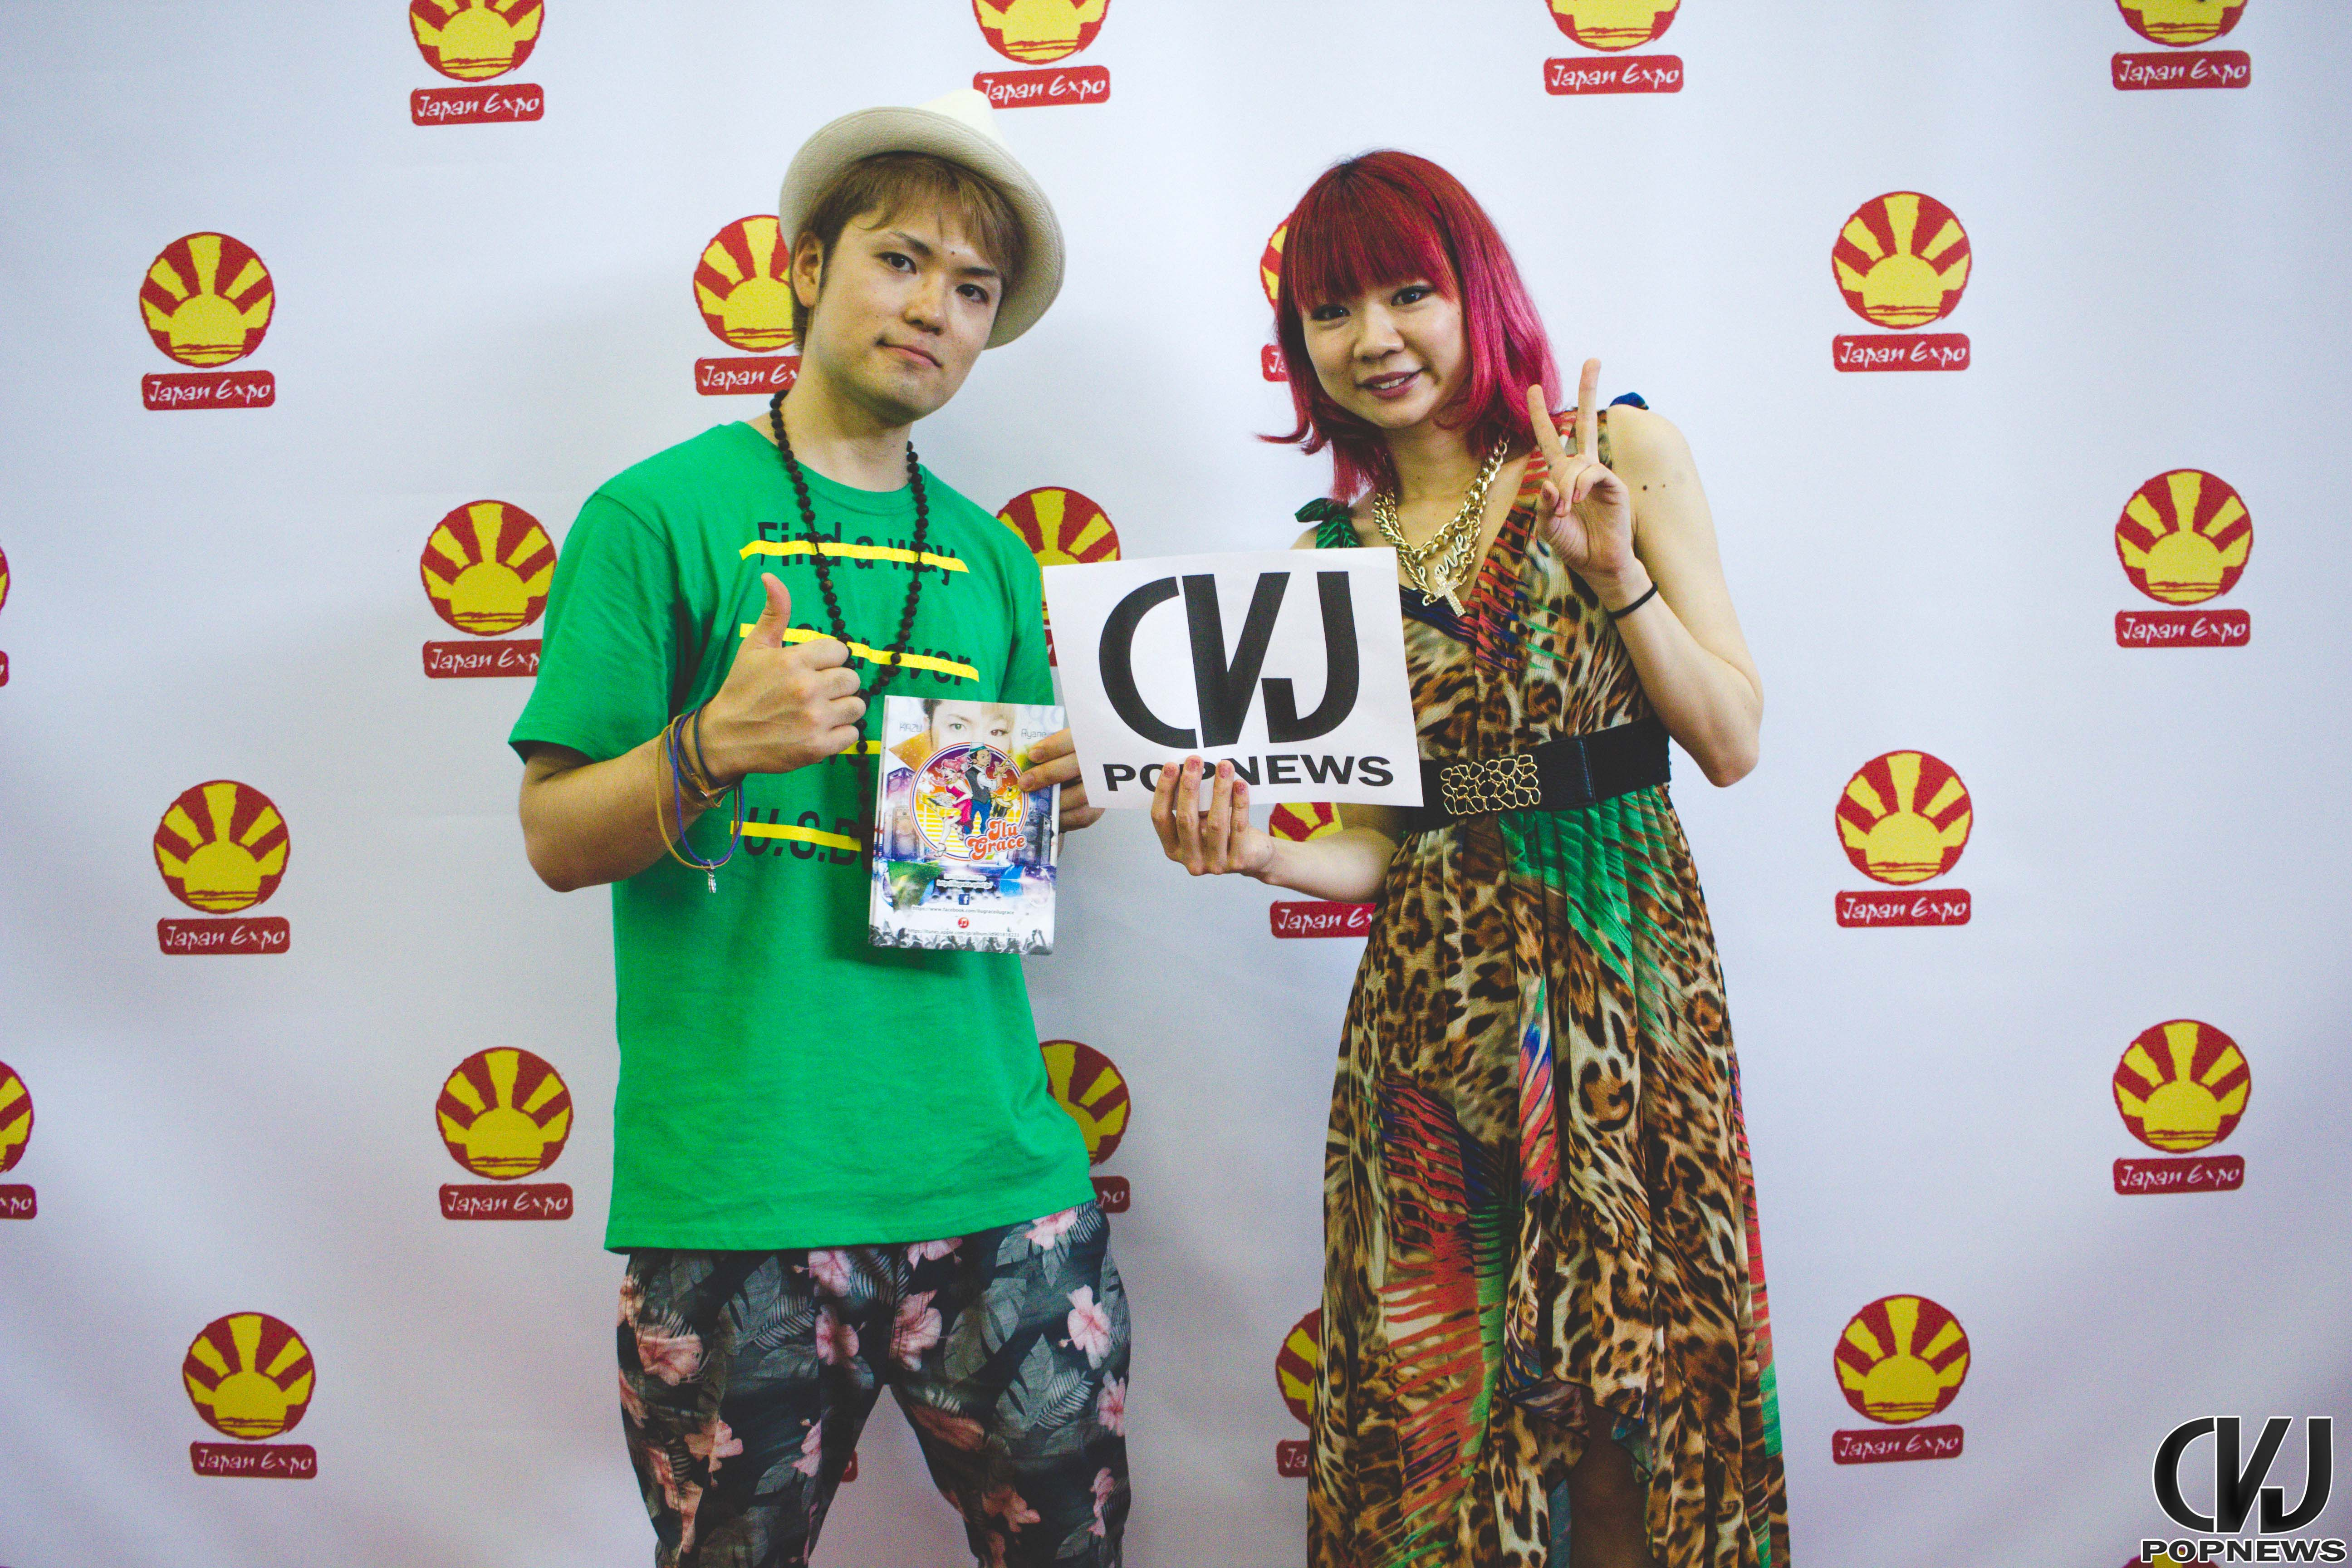 Japan Expo 16 - 150704 - Ilu Grace photocall